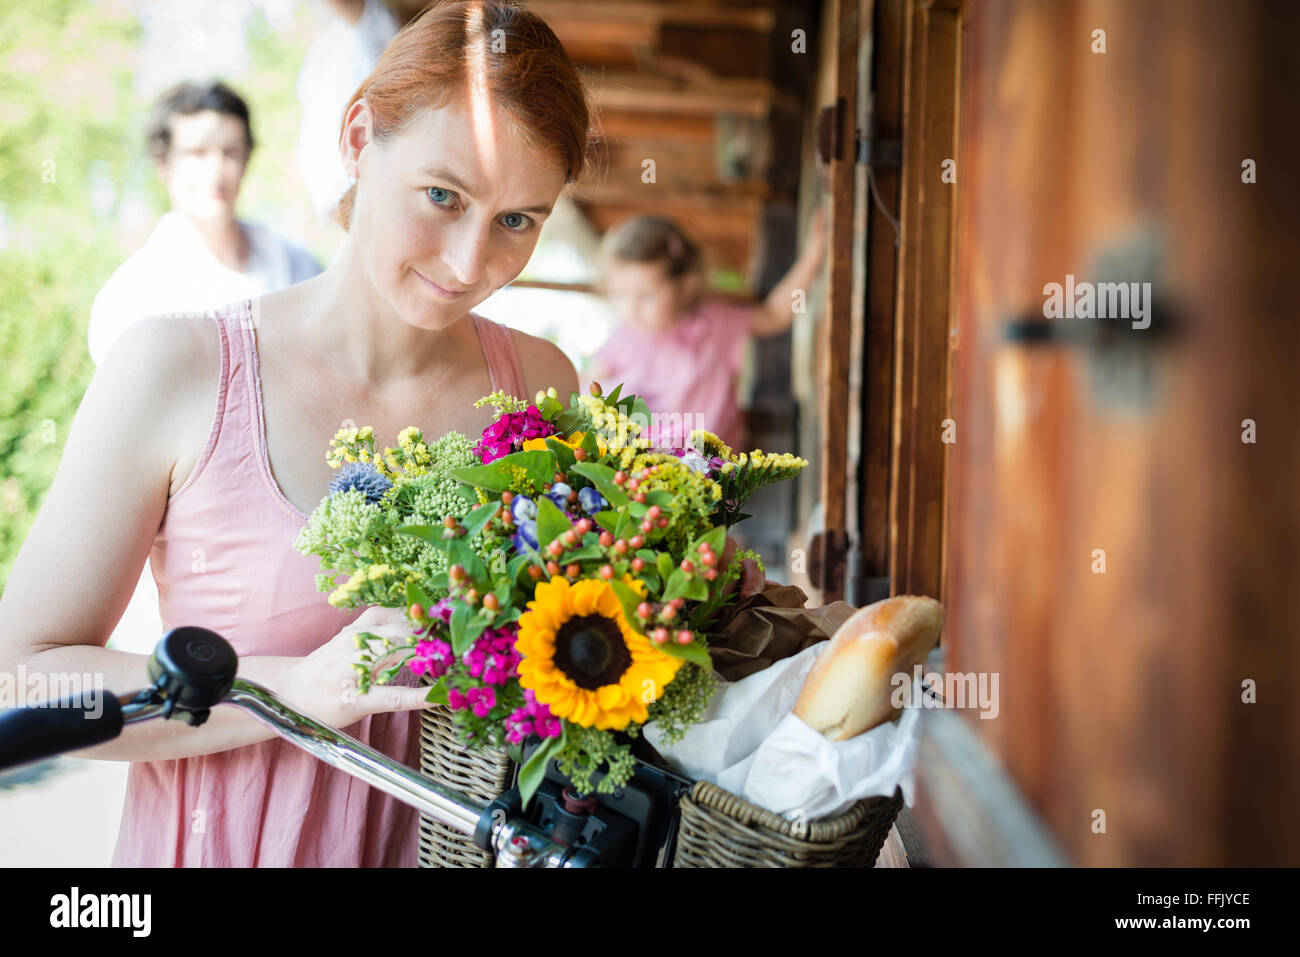 Portrait of mid adult woman with flowers Photo Stock